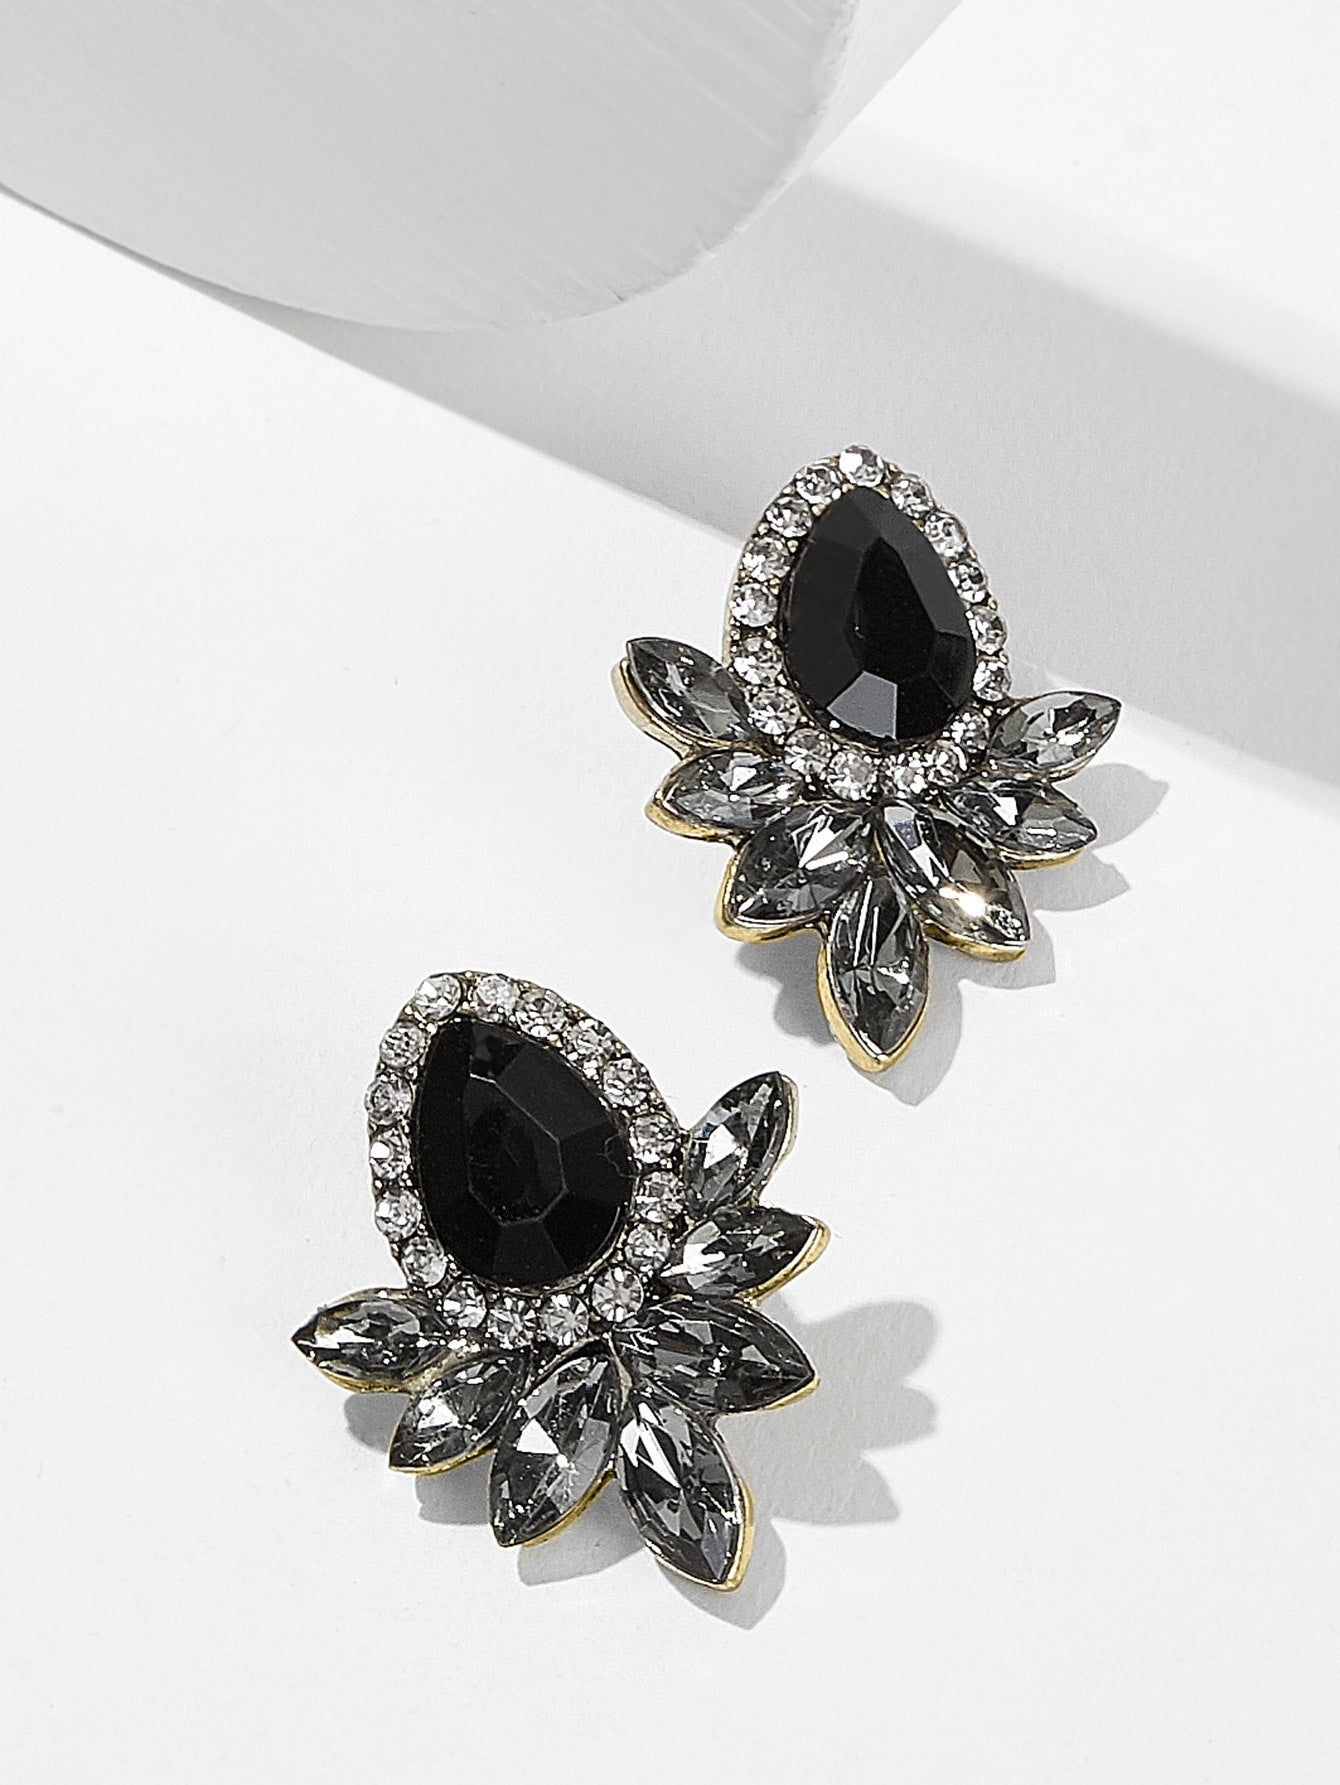 1pair Black Grey Gemstone Silver Stud Earrings